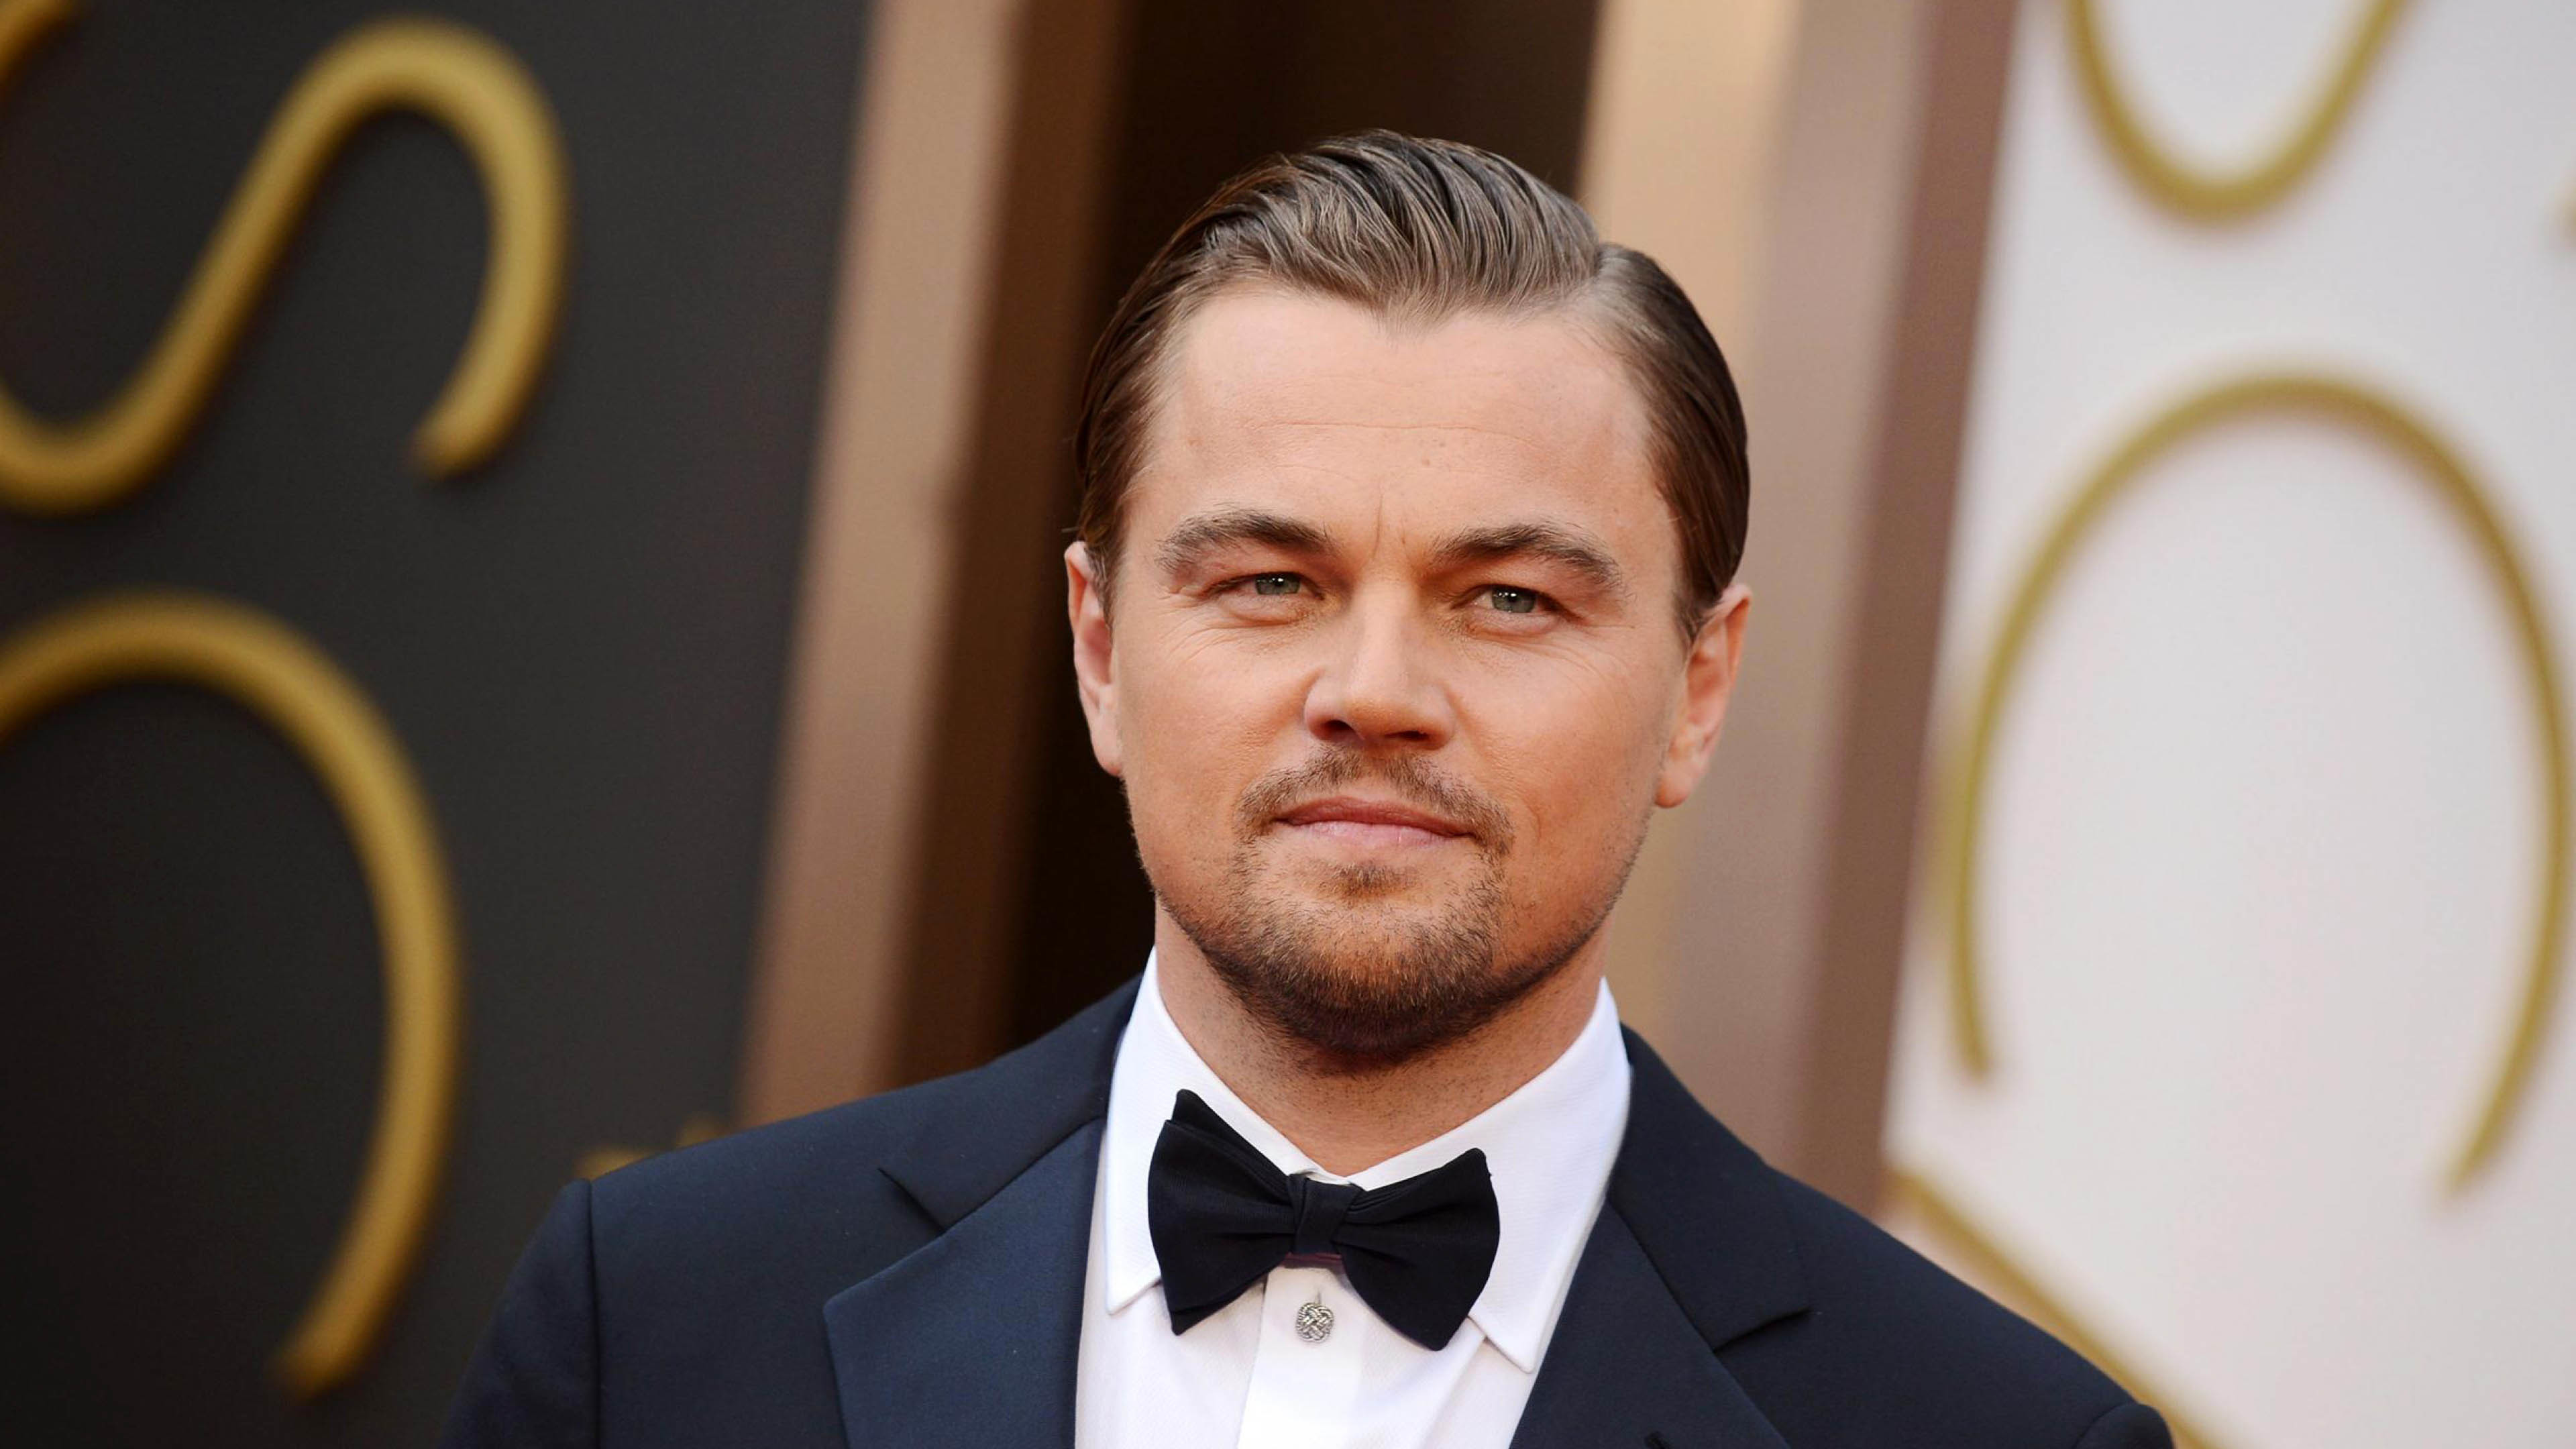 3840x2160 Leonardo DiCaprio at an event  wallpaper